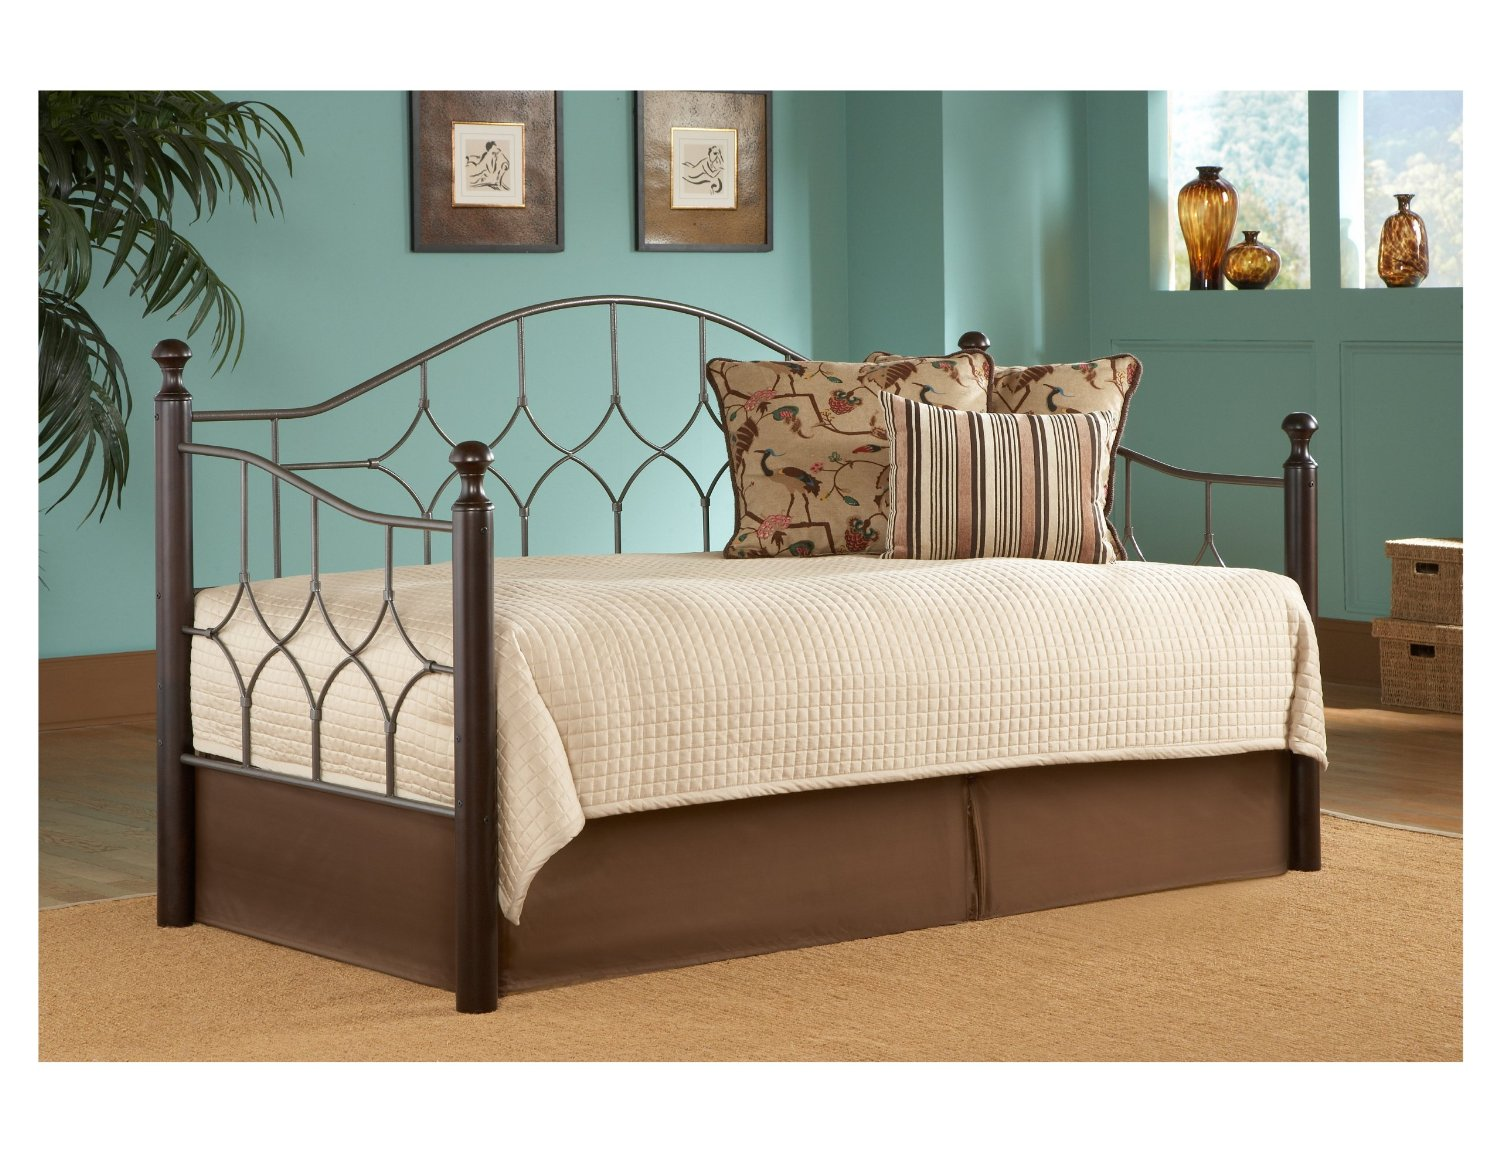 queen size bronze daybed frame ikea queen size bronze daybed ikea queen size bronze daybed ideas